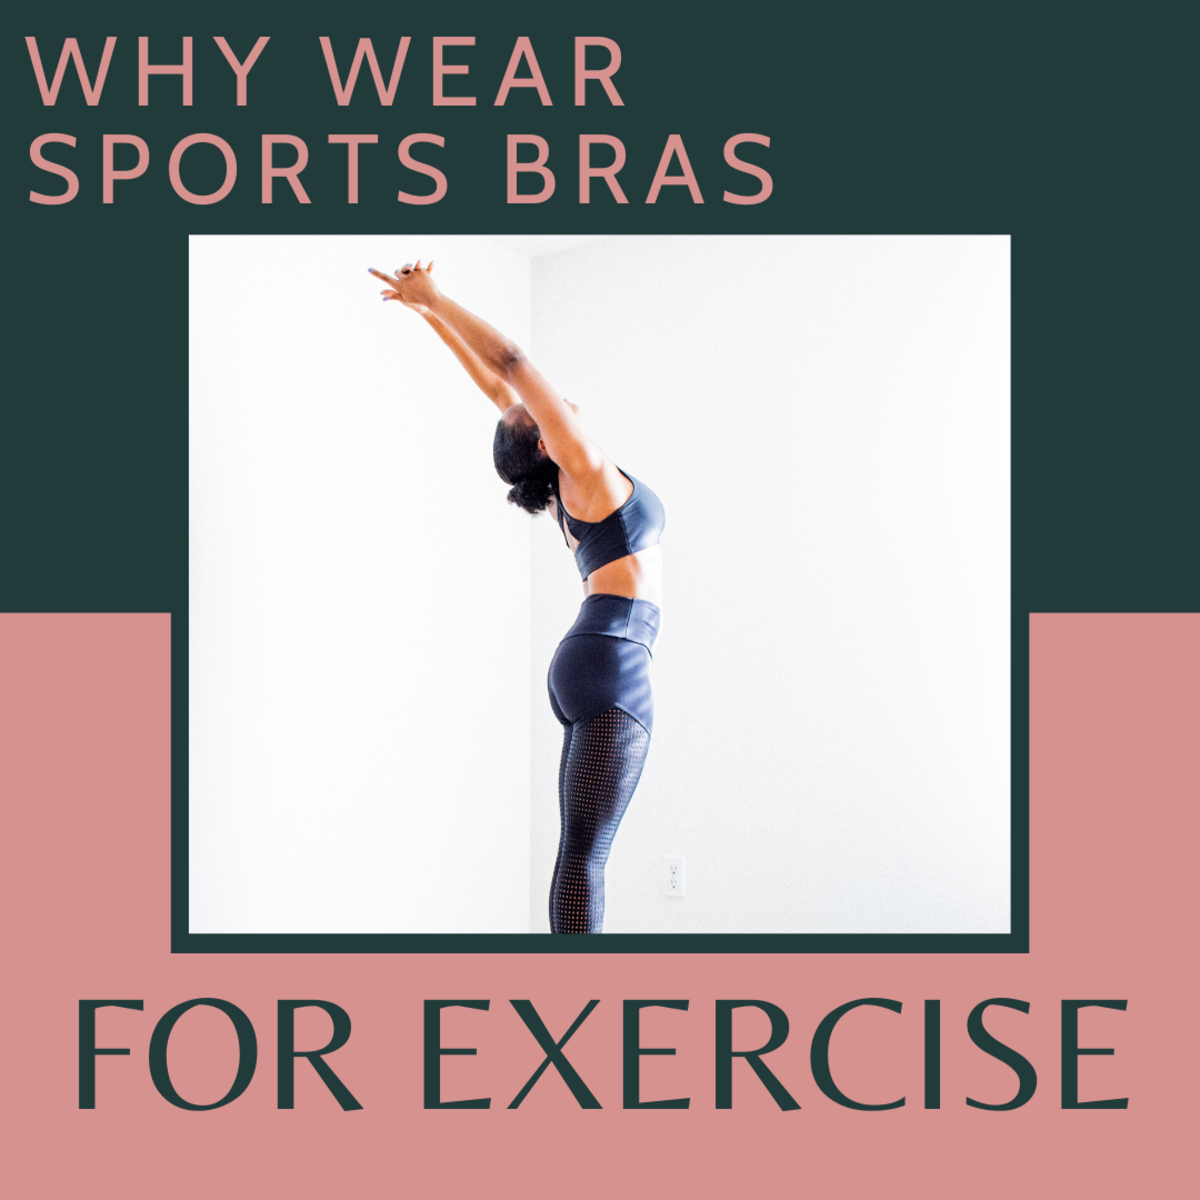 Why Wear a Sports Bra During Exercise?